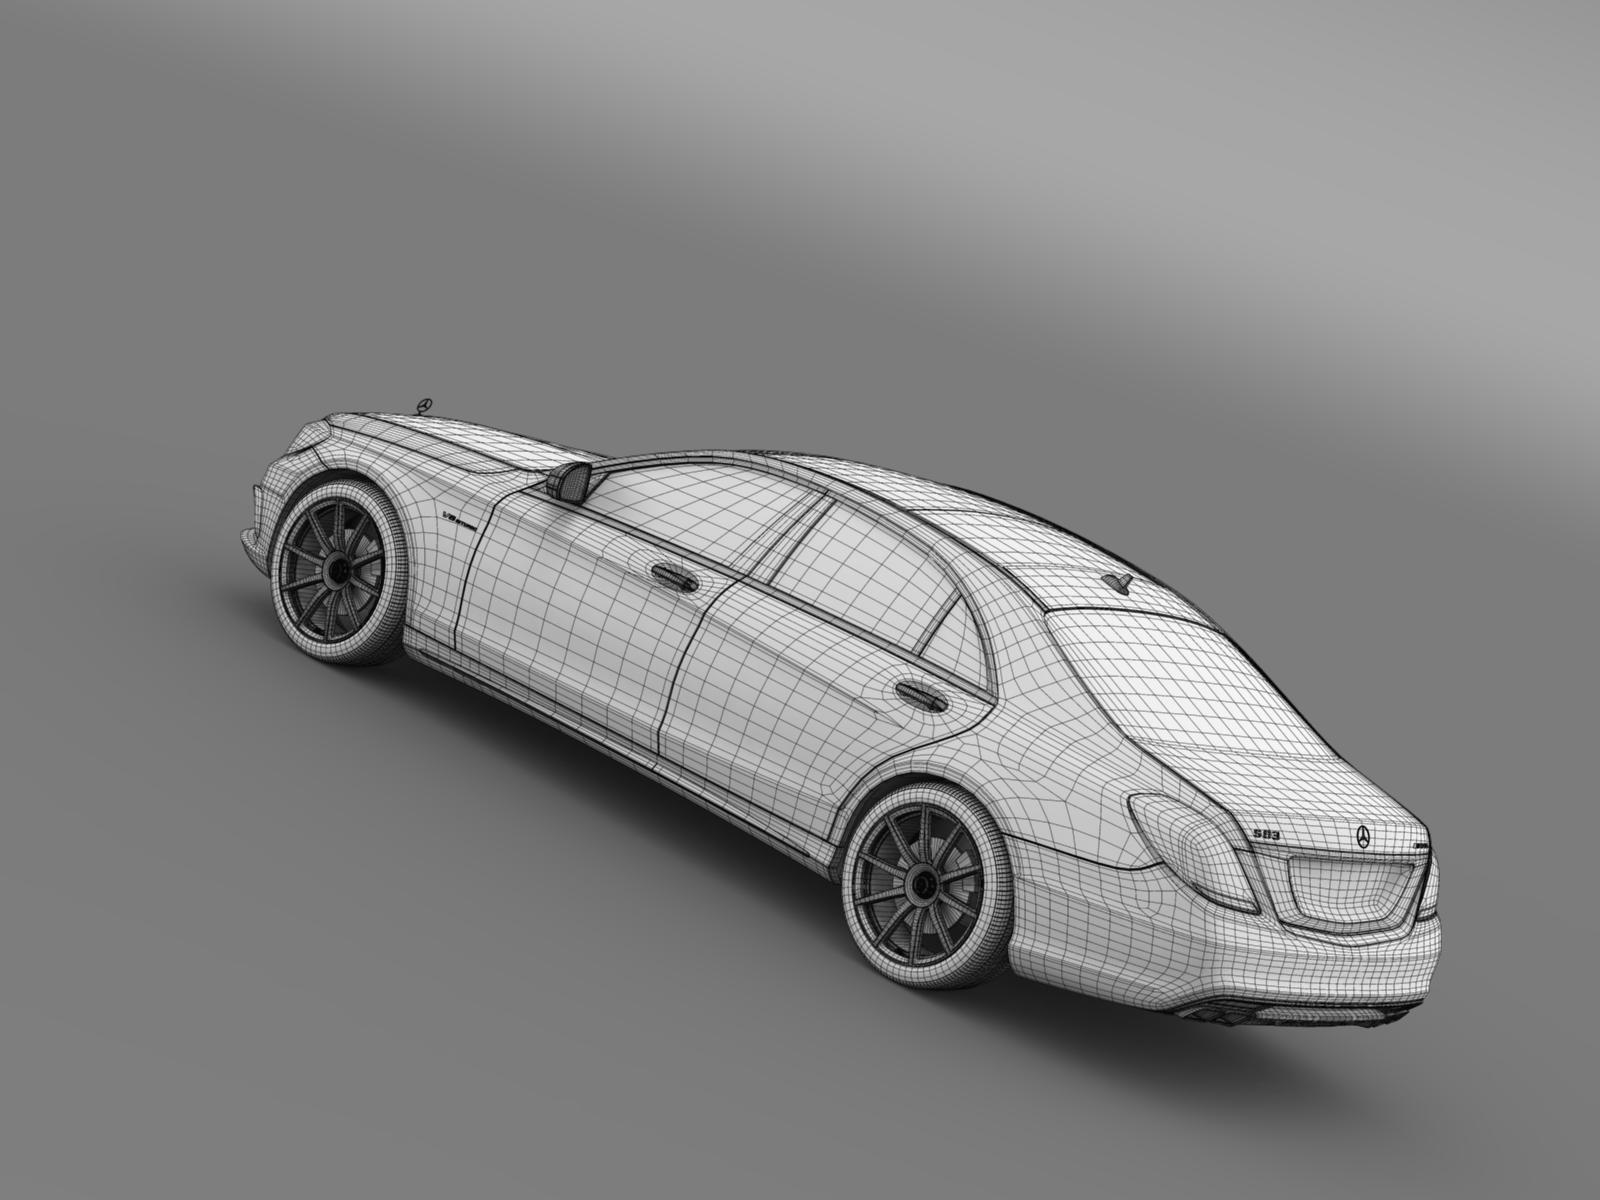 Mercedes benz s 63 amg w222 2013 by creator 3d 3docean for Mercedes benz creator